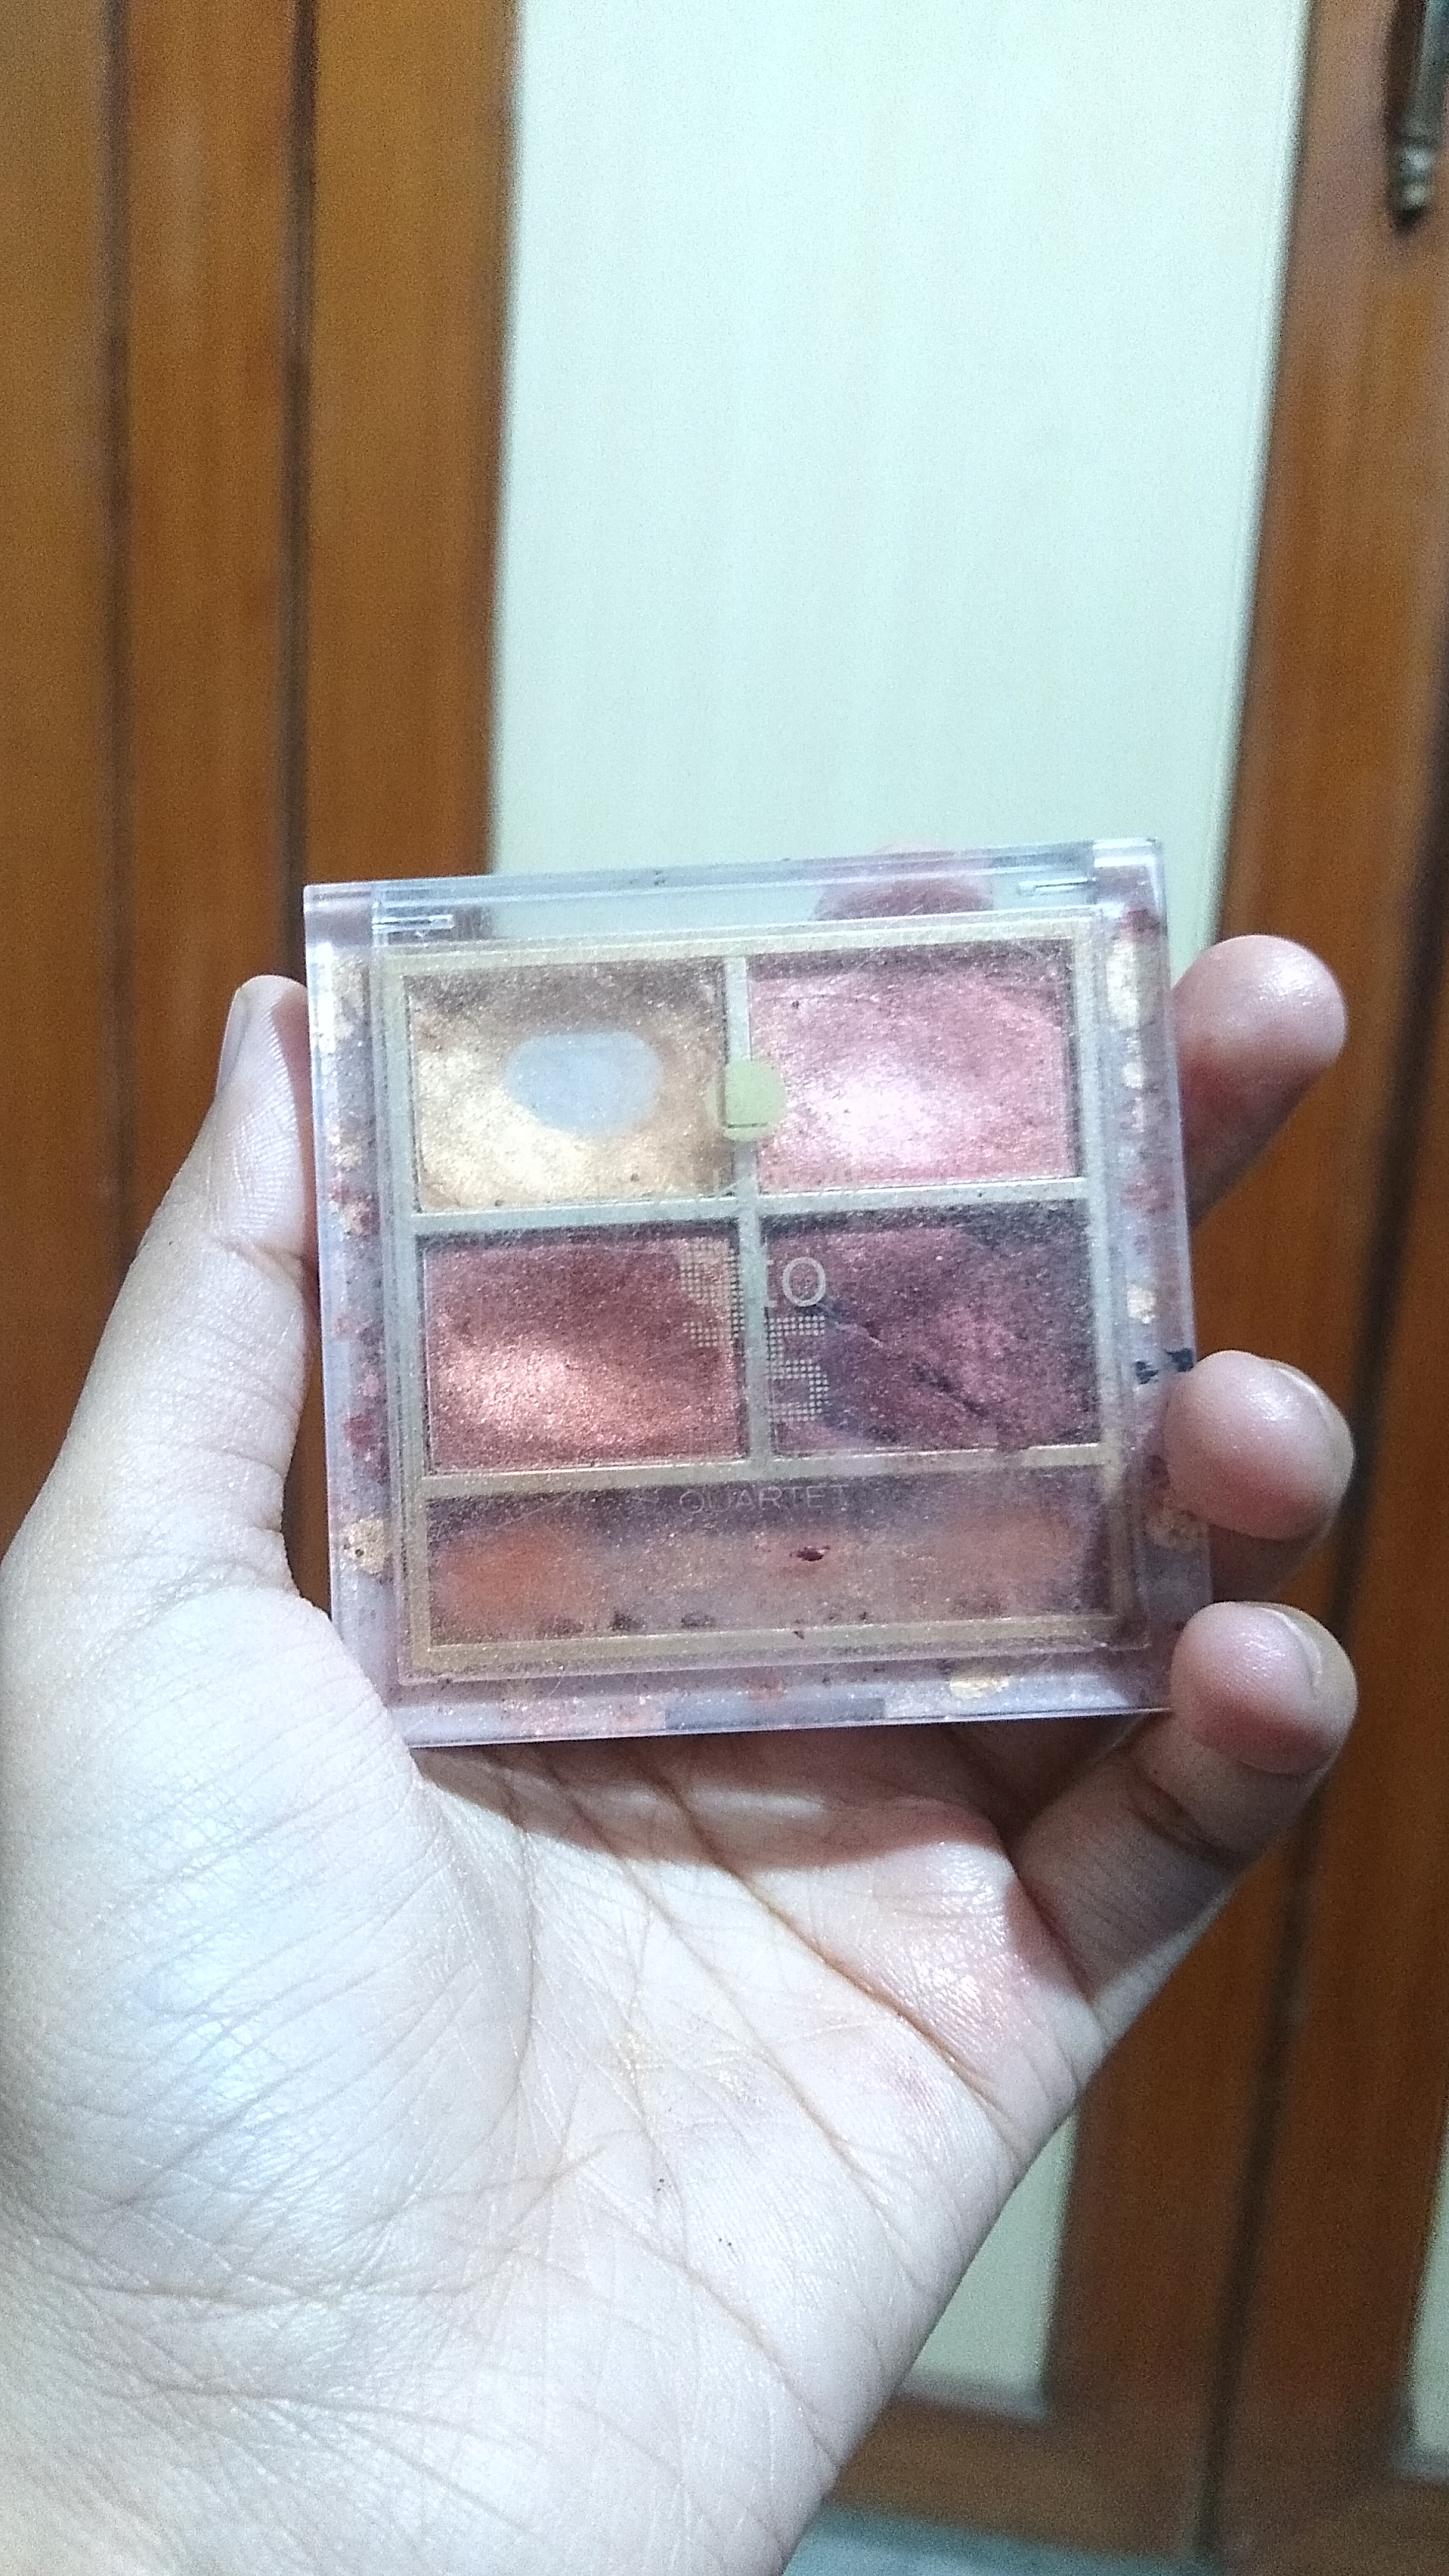 Lakme 9 To 5 Eye Quartet Eyeshadow -Super pigmented-By lilgirl27